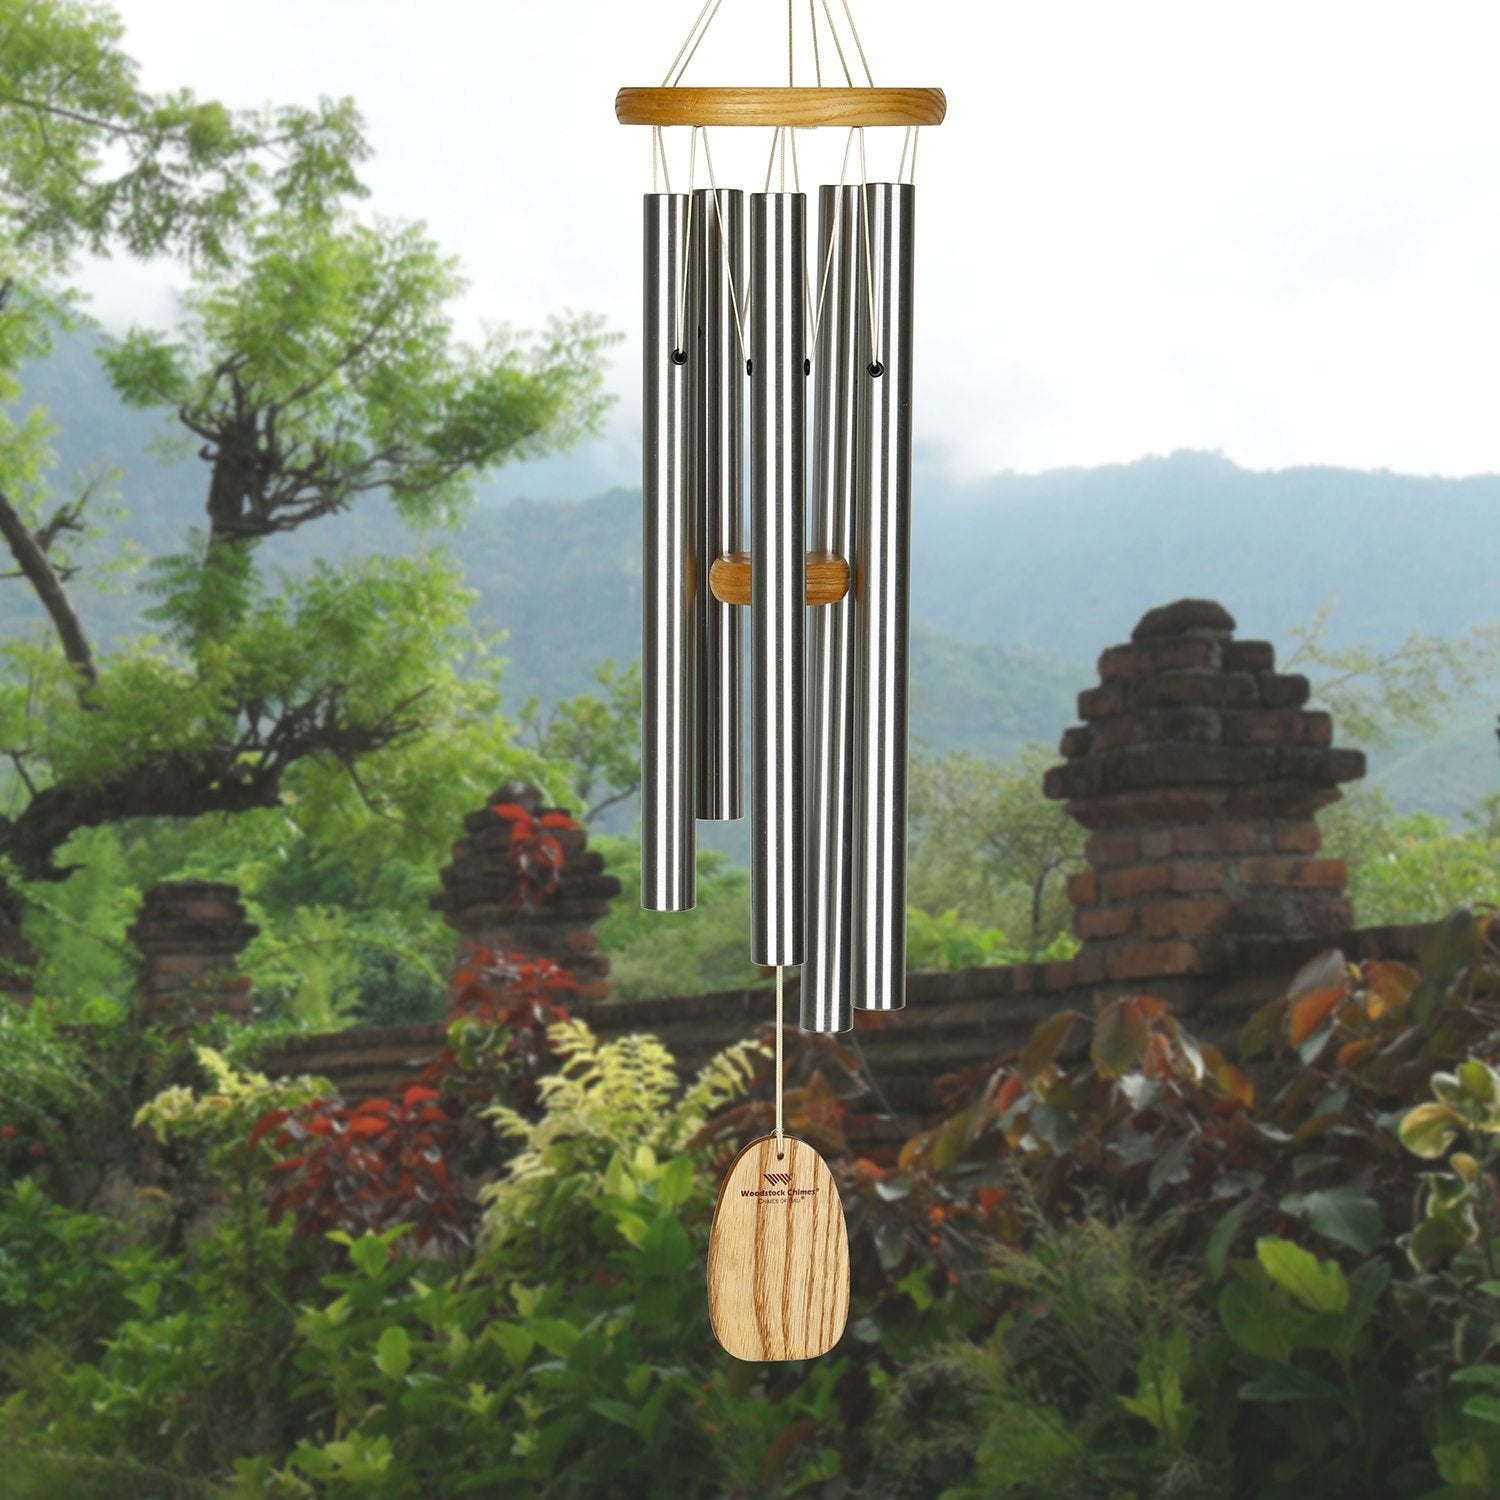 Chimes of Bali lifestyle image